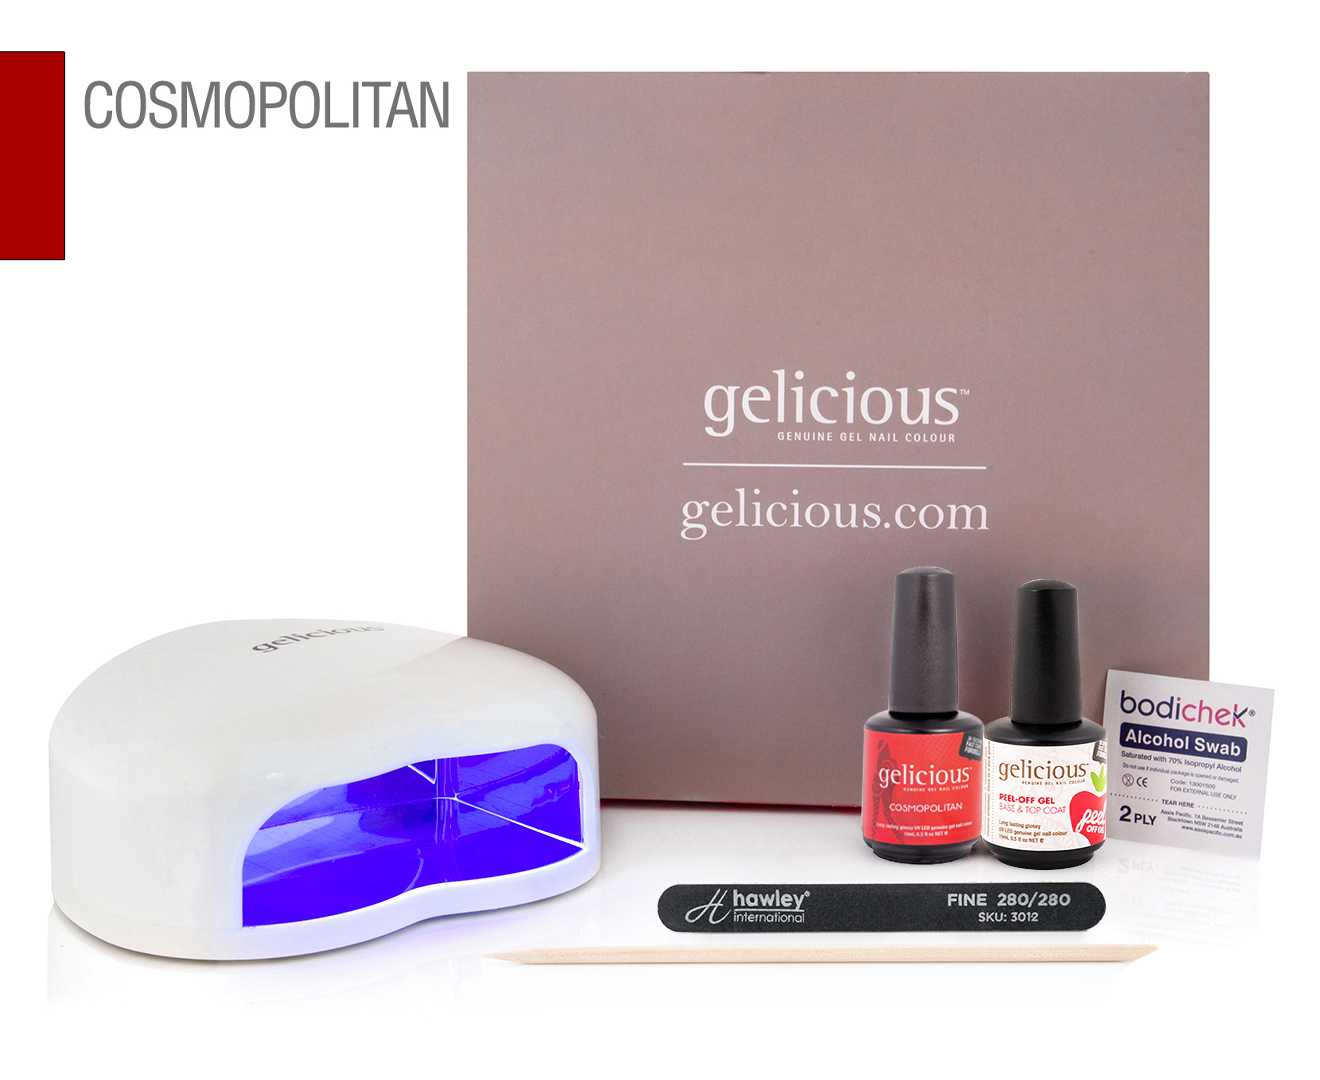 Gelicious Gel Nail Polish Starter Kit - Cosmopolitan | Catch.com.au